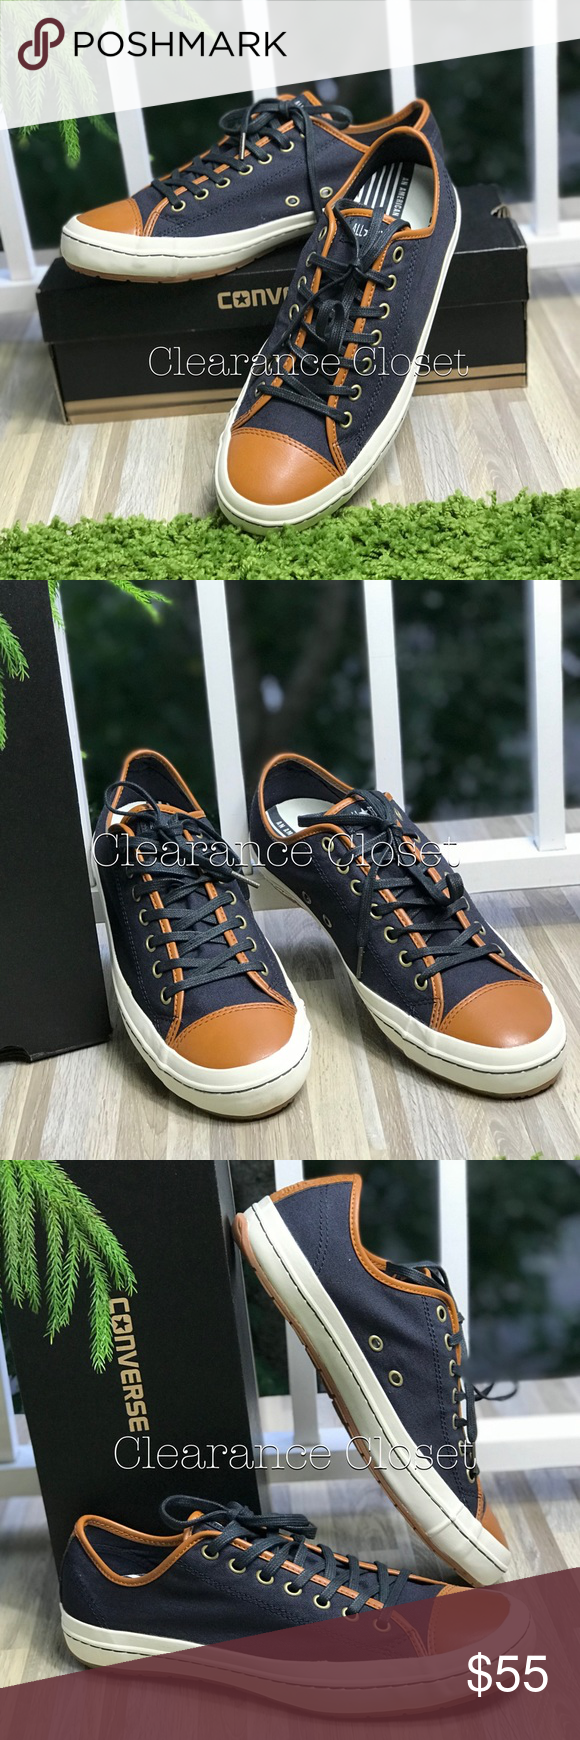 6ee24d2abae9 NWT Converse CT Premiere Ox Dark Navy M AUTHENTIC Brand new with box. Price  is firm! No trades. Upper  Textile Leather. Lining  Textile. Outsole   Rubber.